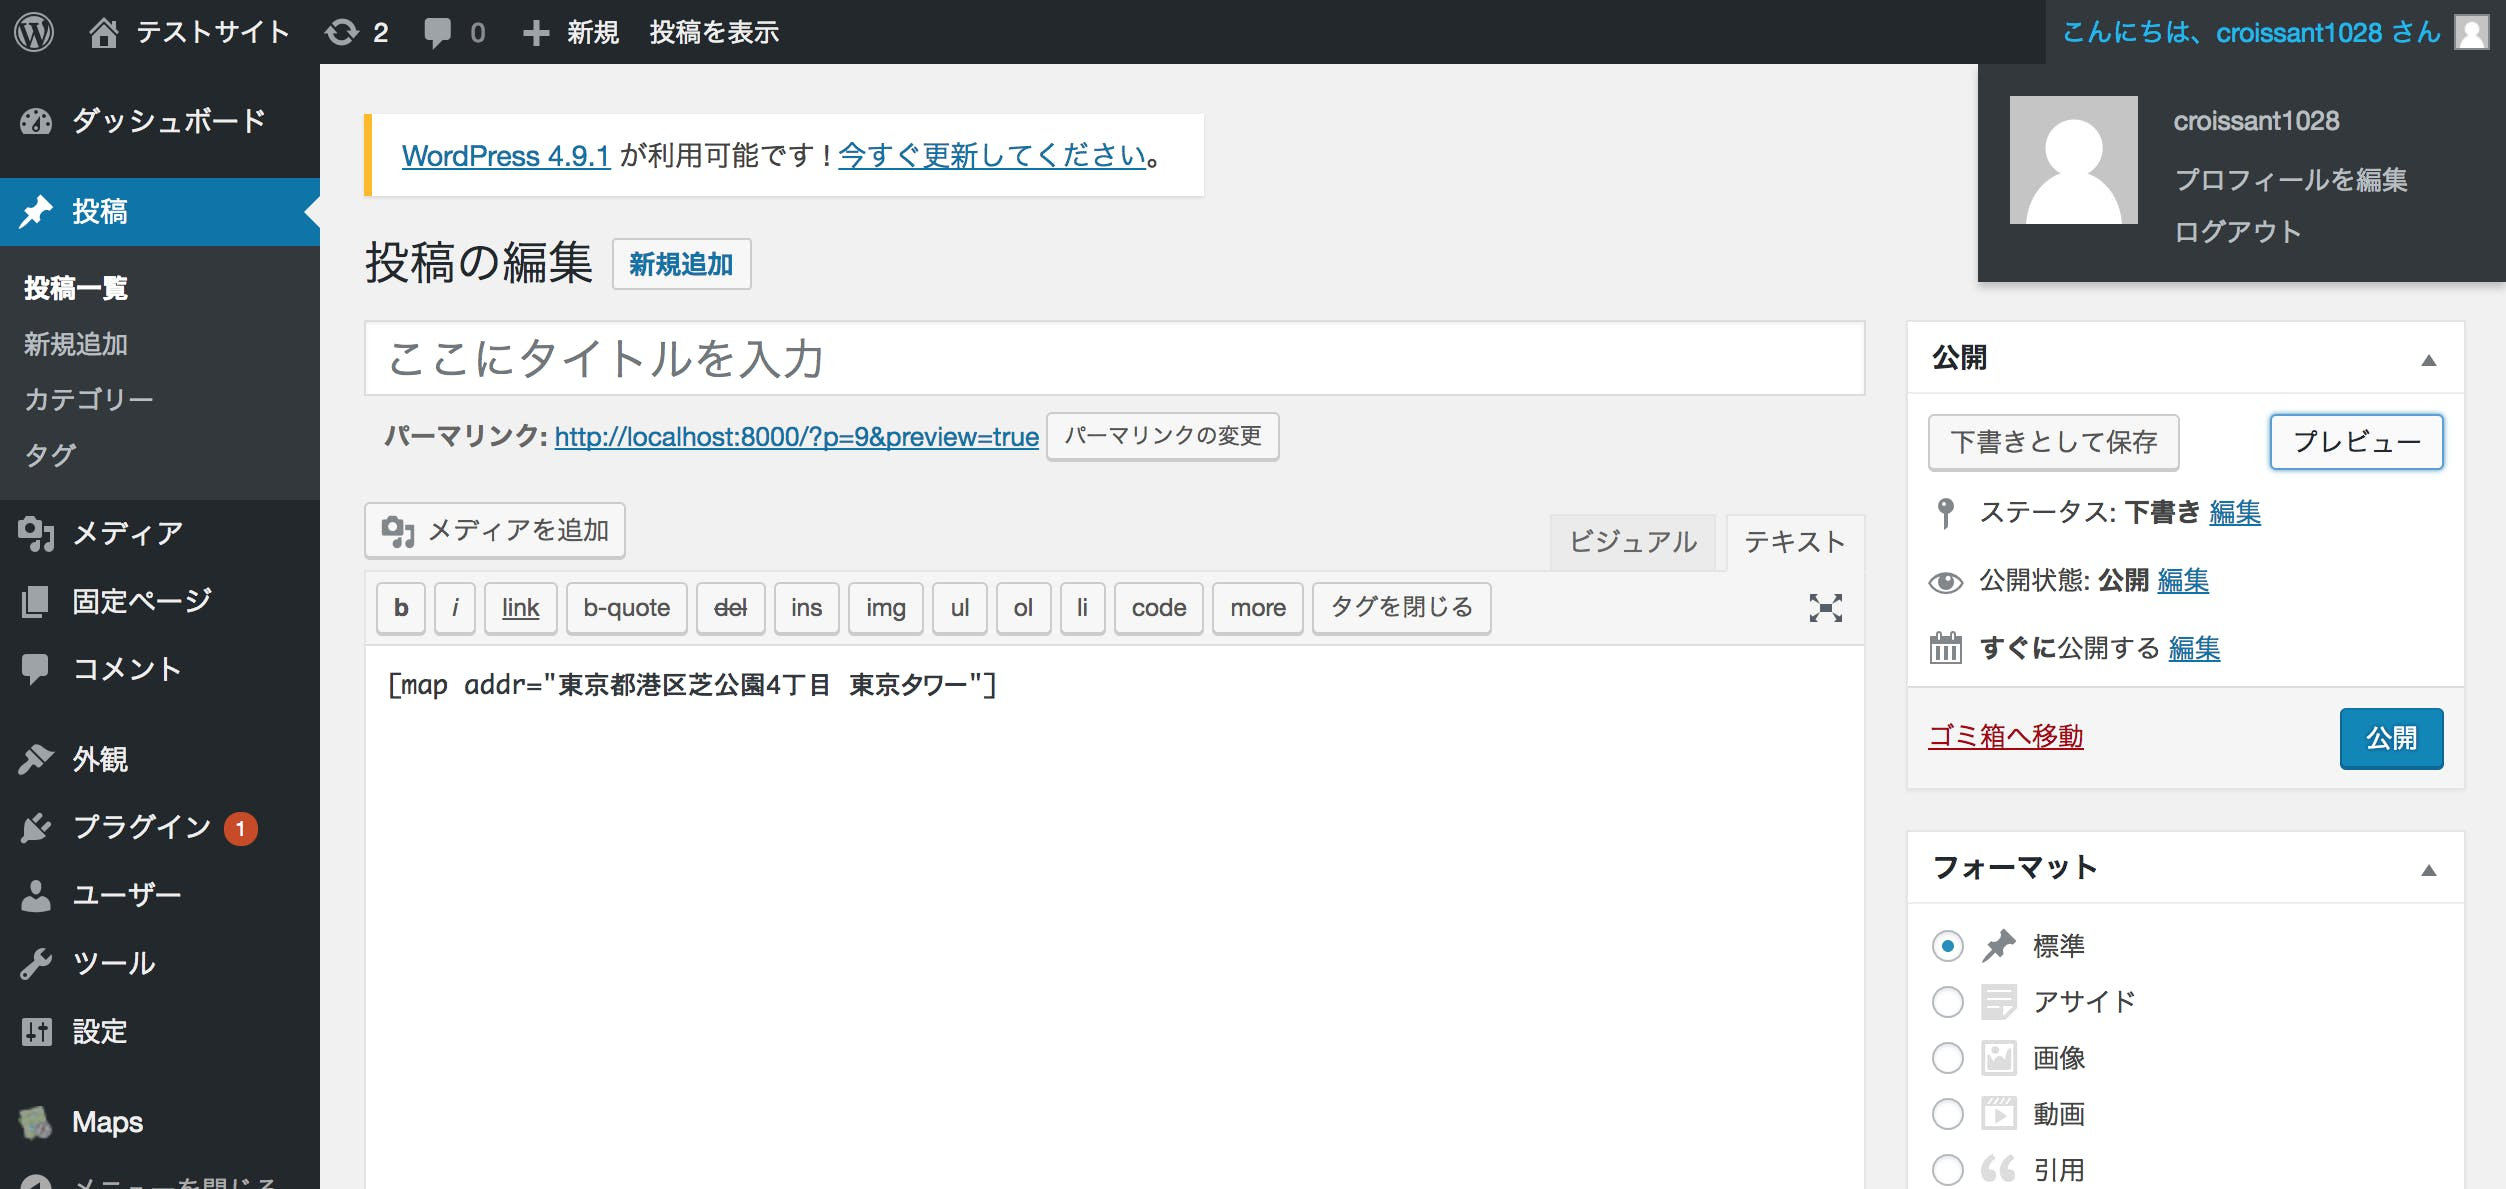 FireShot_Capture_14_-_投稿の編集_‹_テストサイト_—_WordPress__-_http___localhost_8000_wp-admin_post_php.png